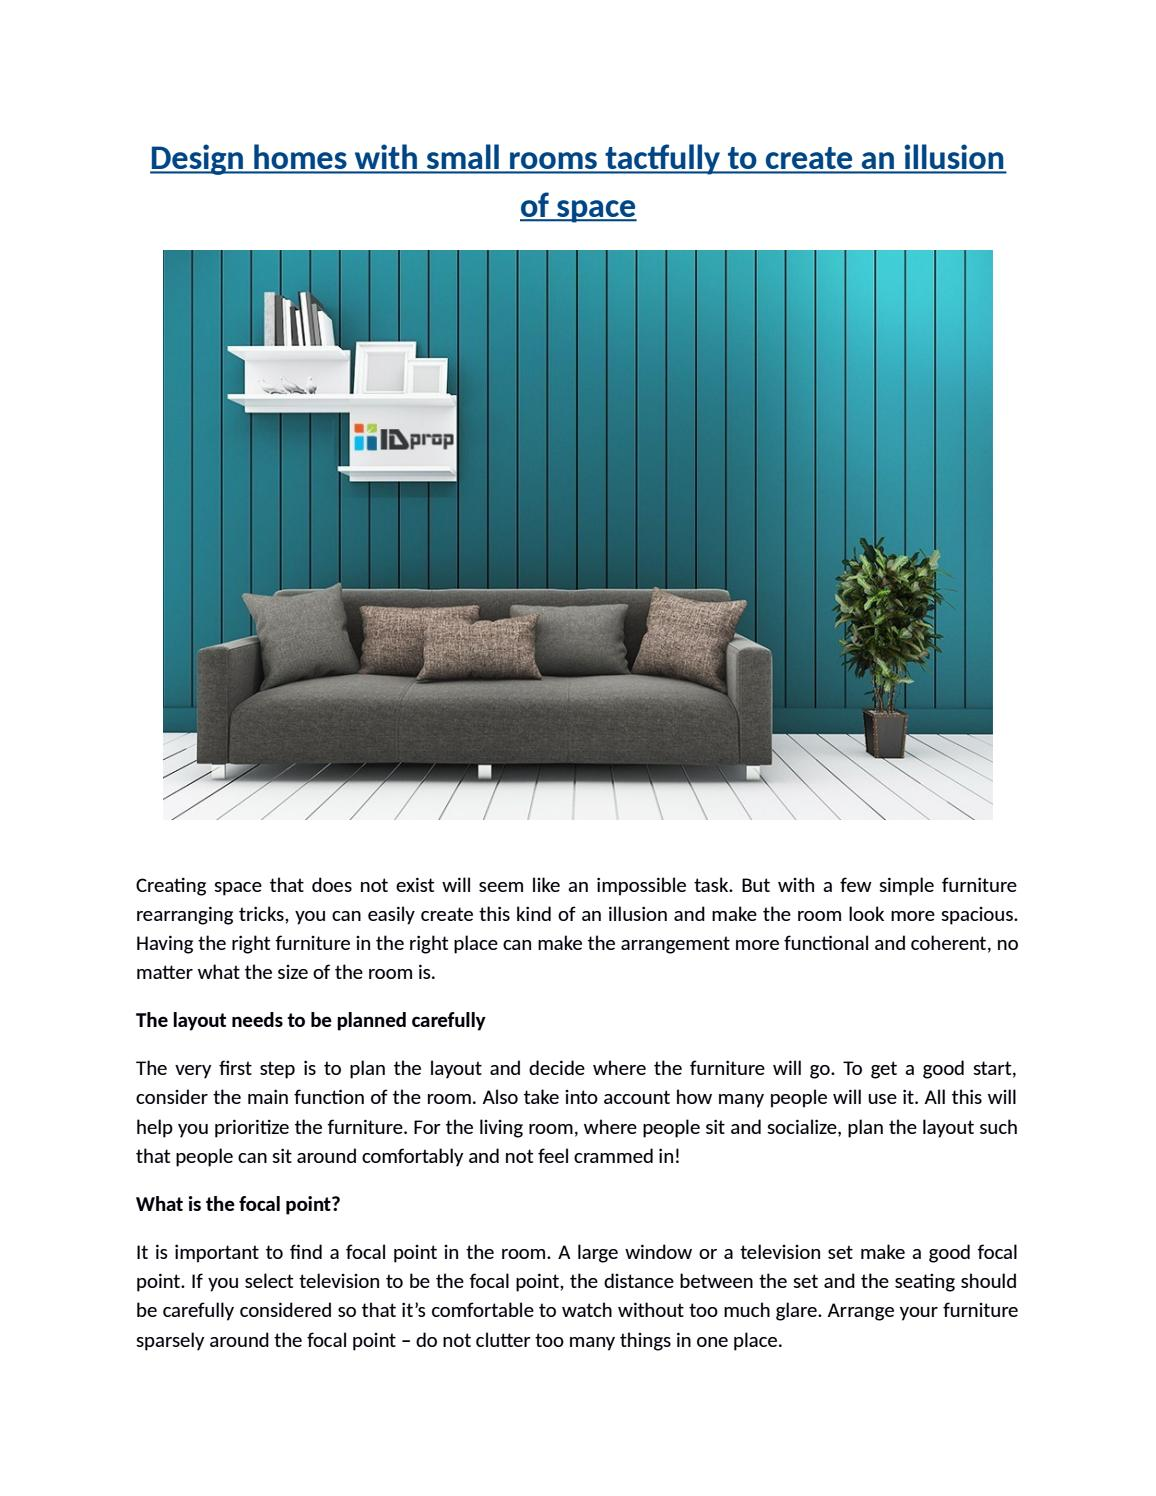 website to arrange furniture. Design Homes With Small Rooms Tactfully To Create An Illusion Of Space By Idpropdotcom - Issuu Website Arrange Furniture S